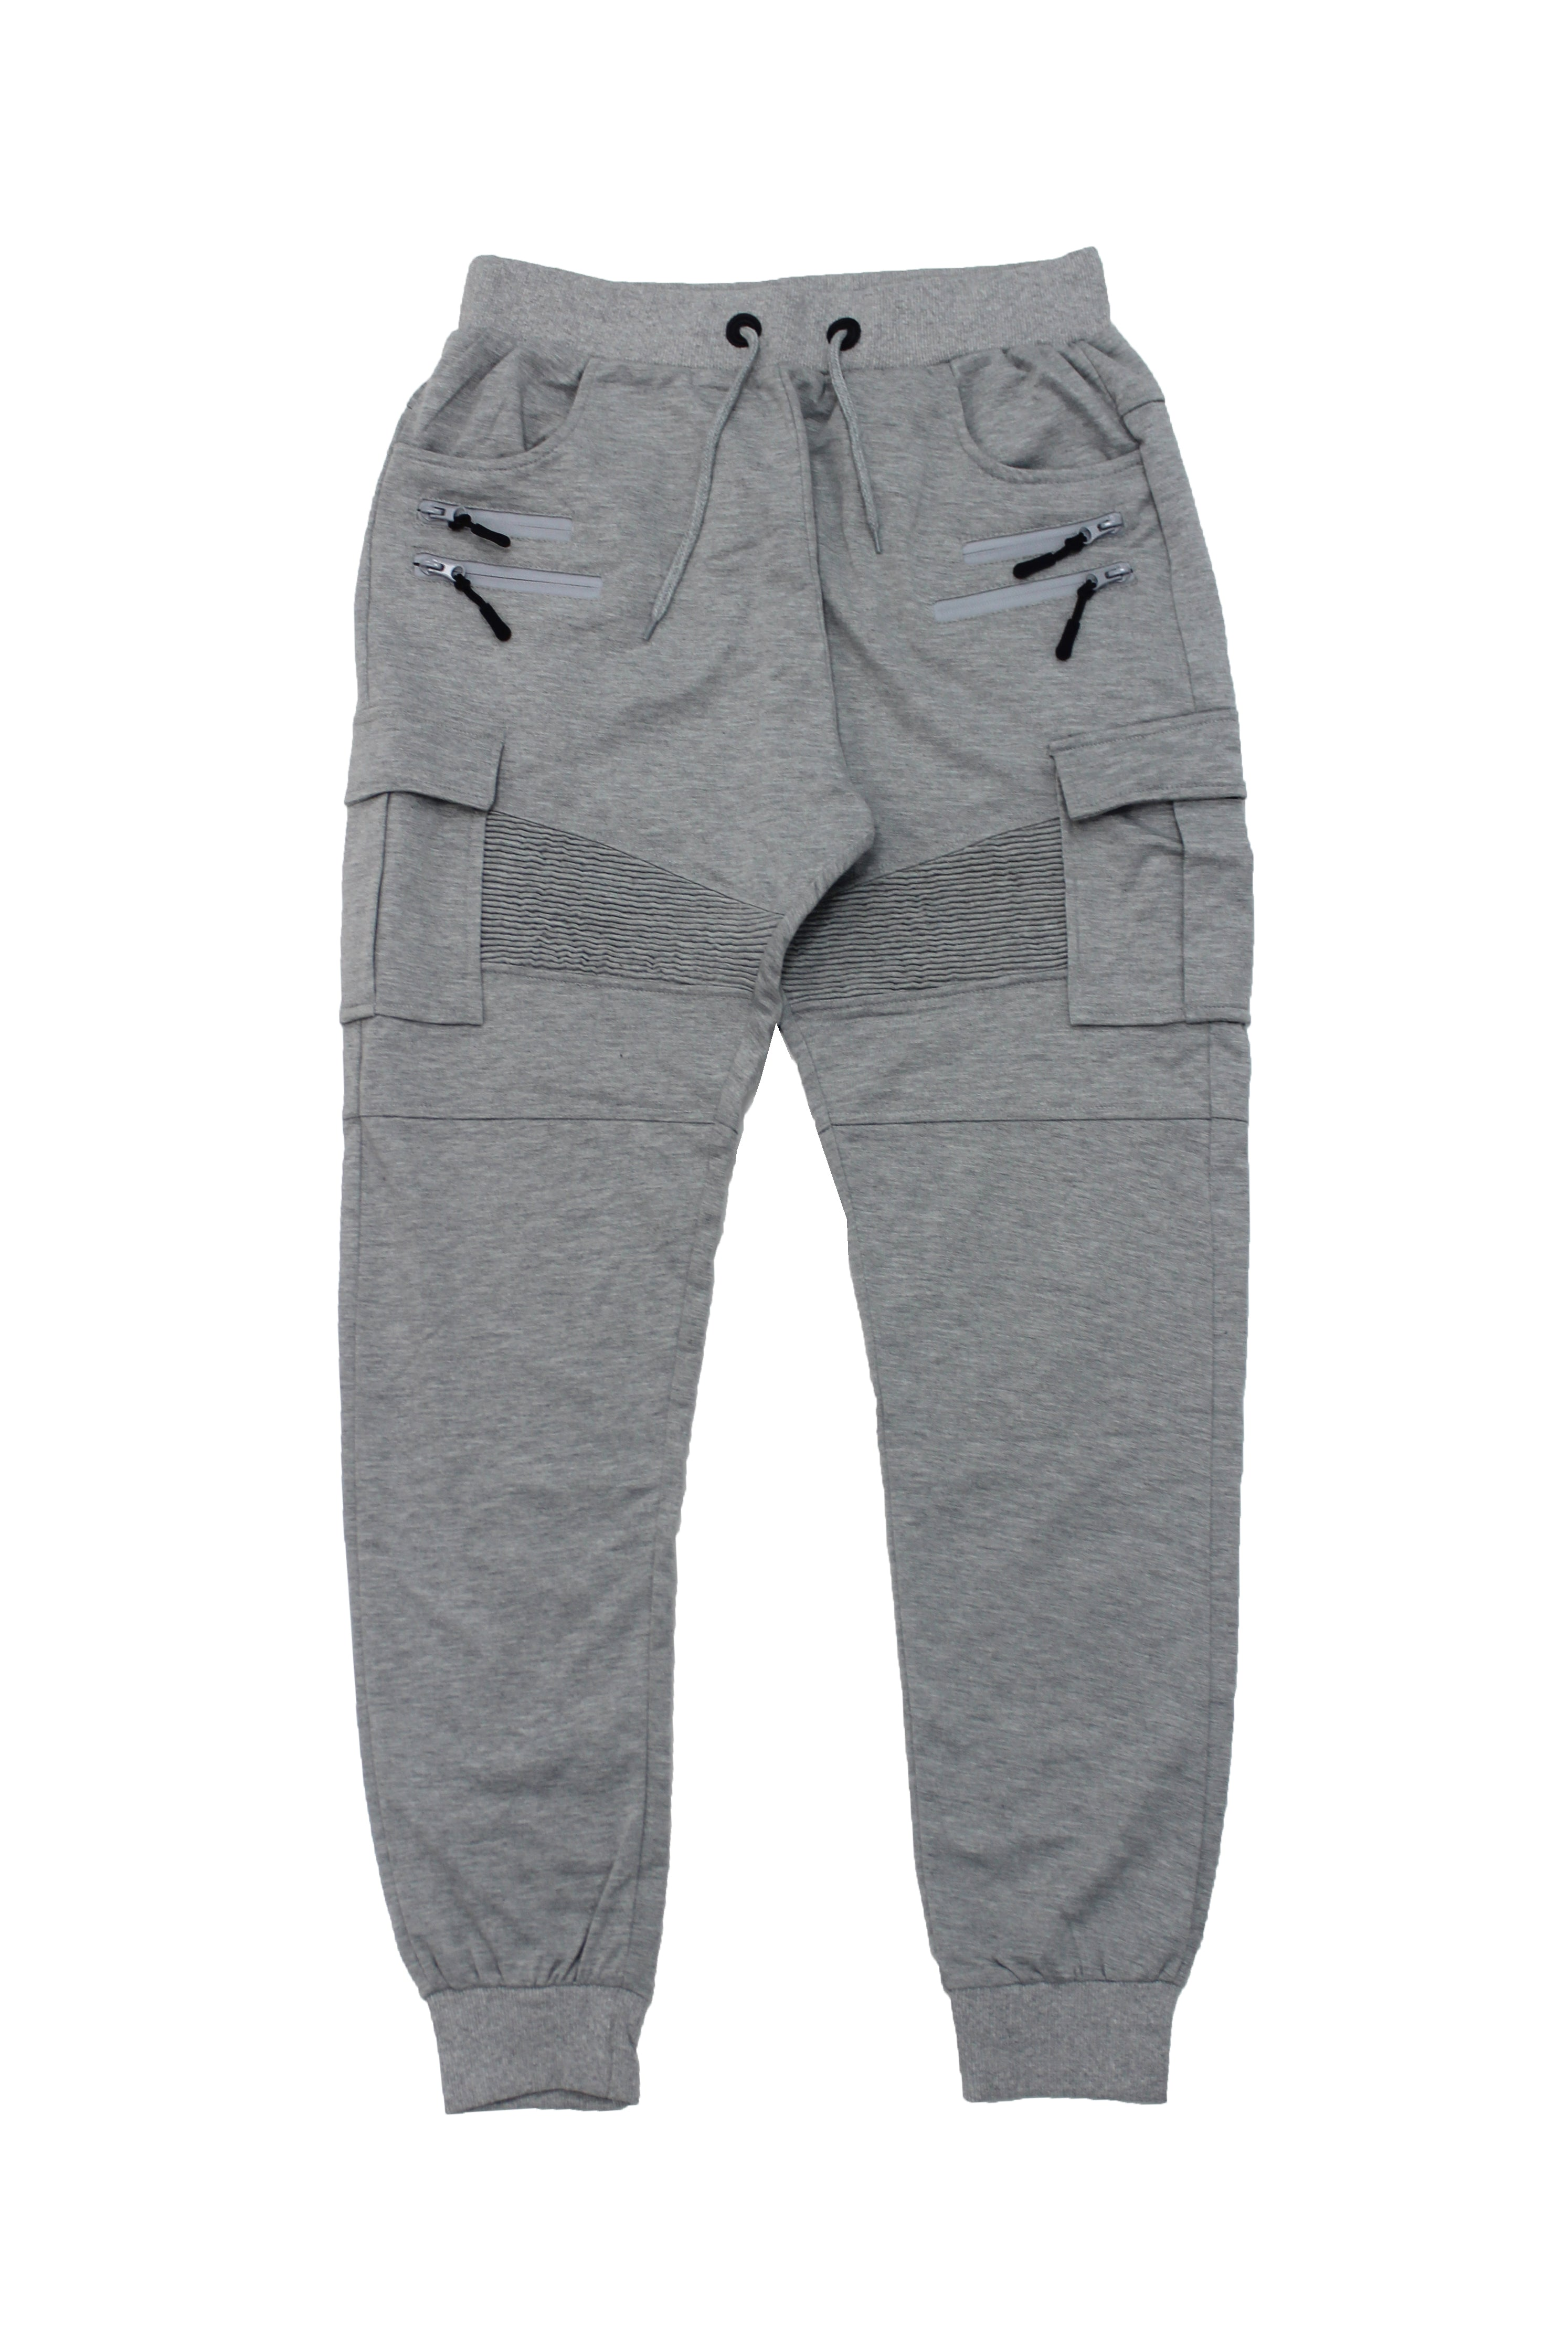 Grey Double Zip Cargo Jogger - American Stitch